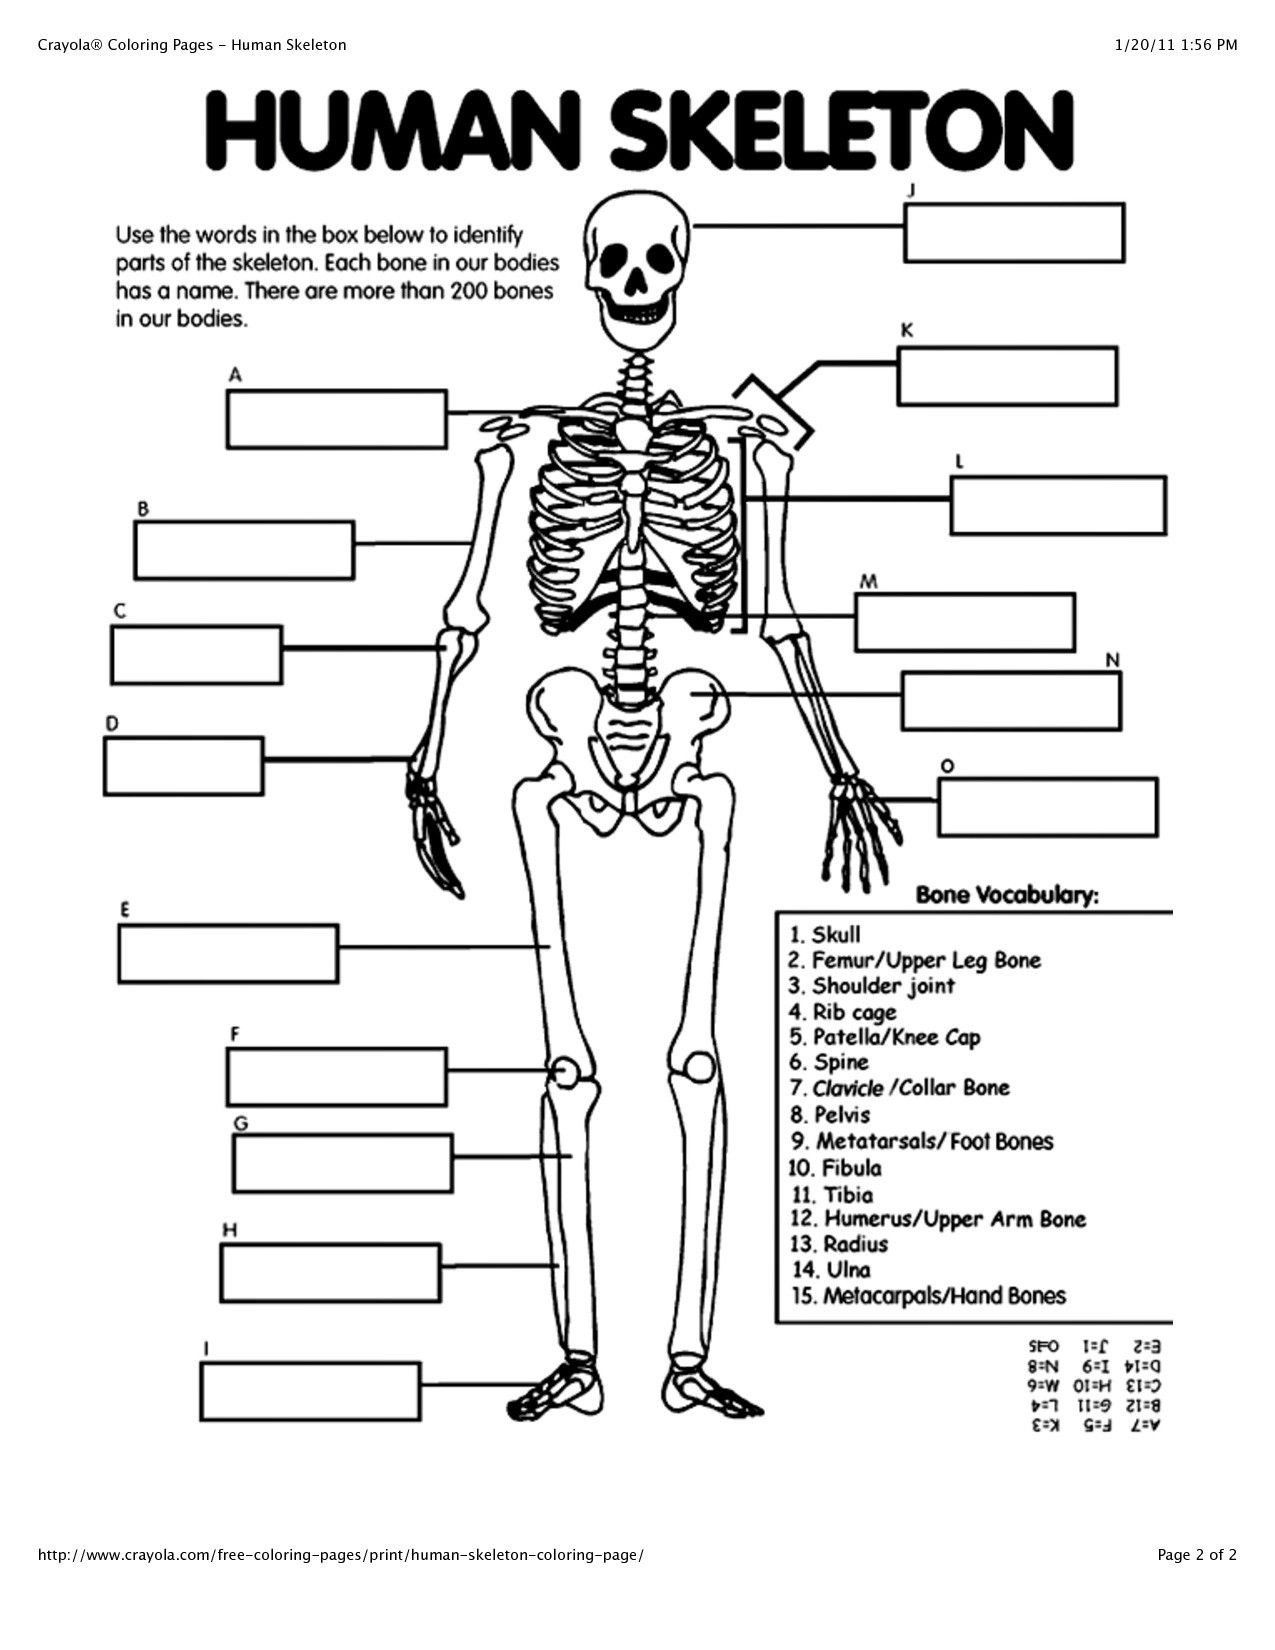 Skeletal System Coloring Pages Human Anatomy For Beginners